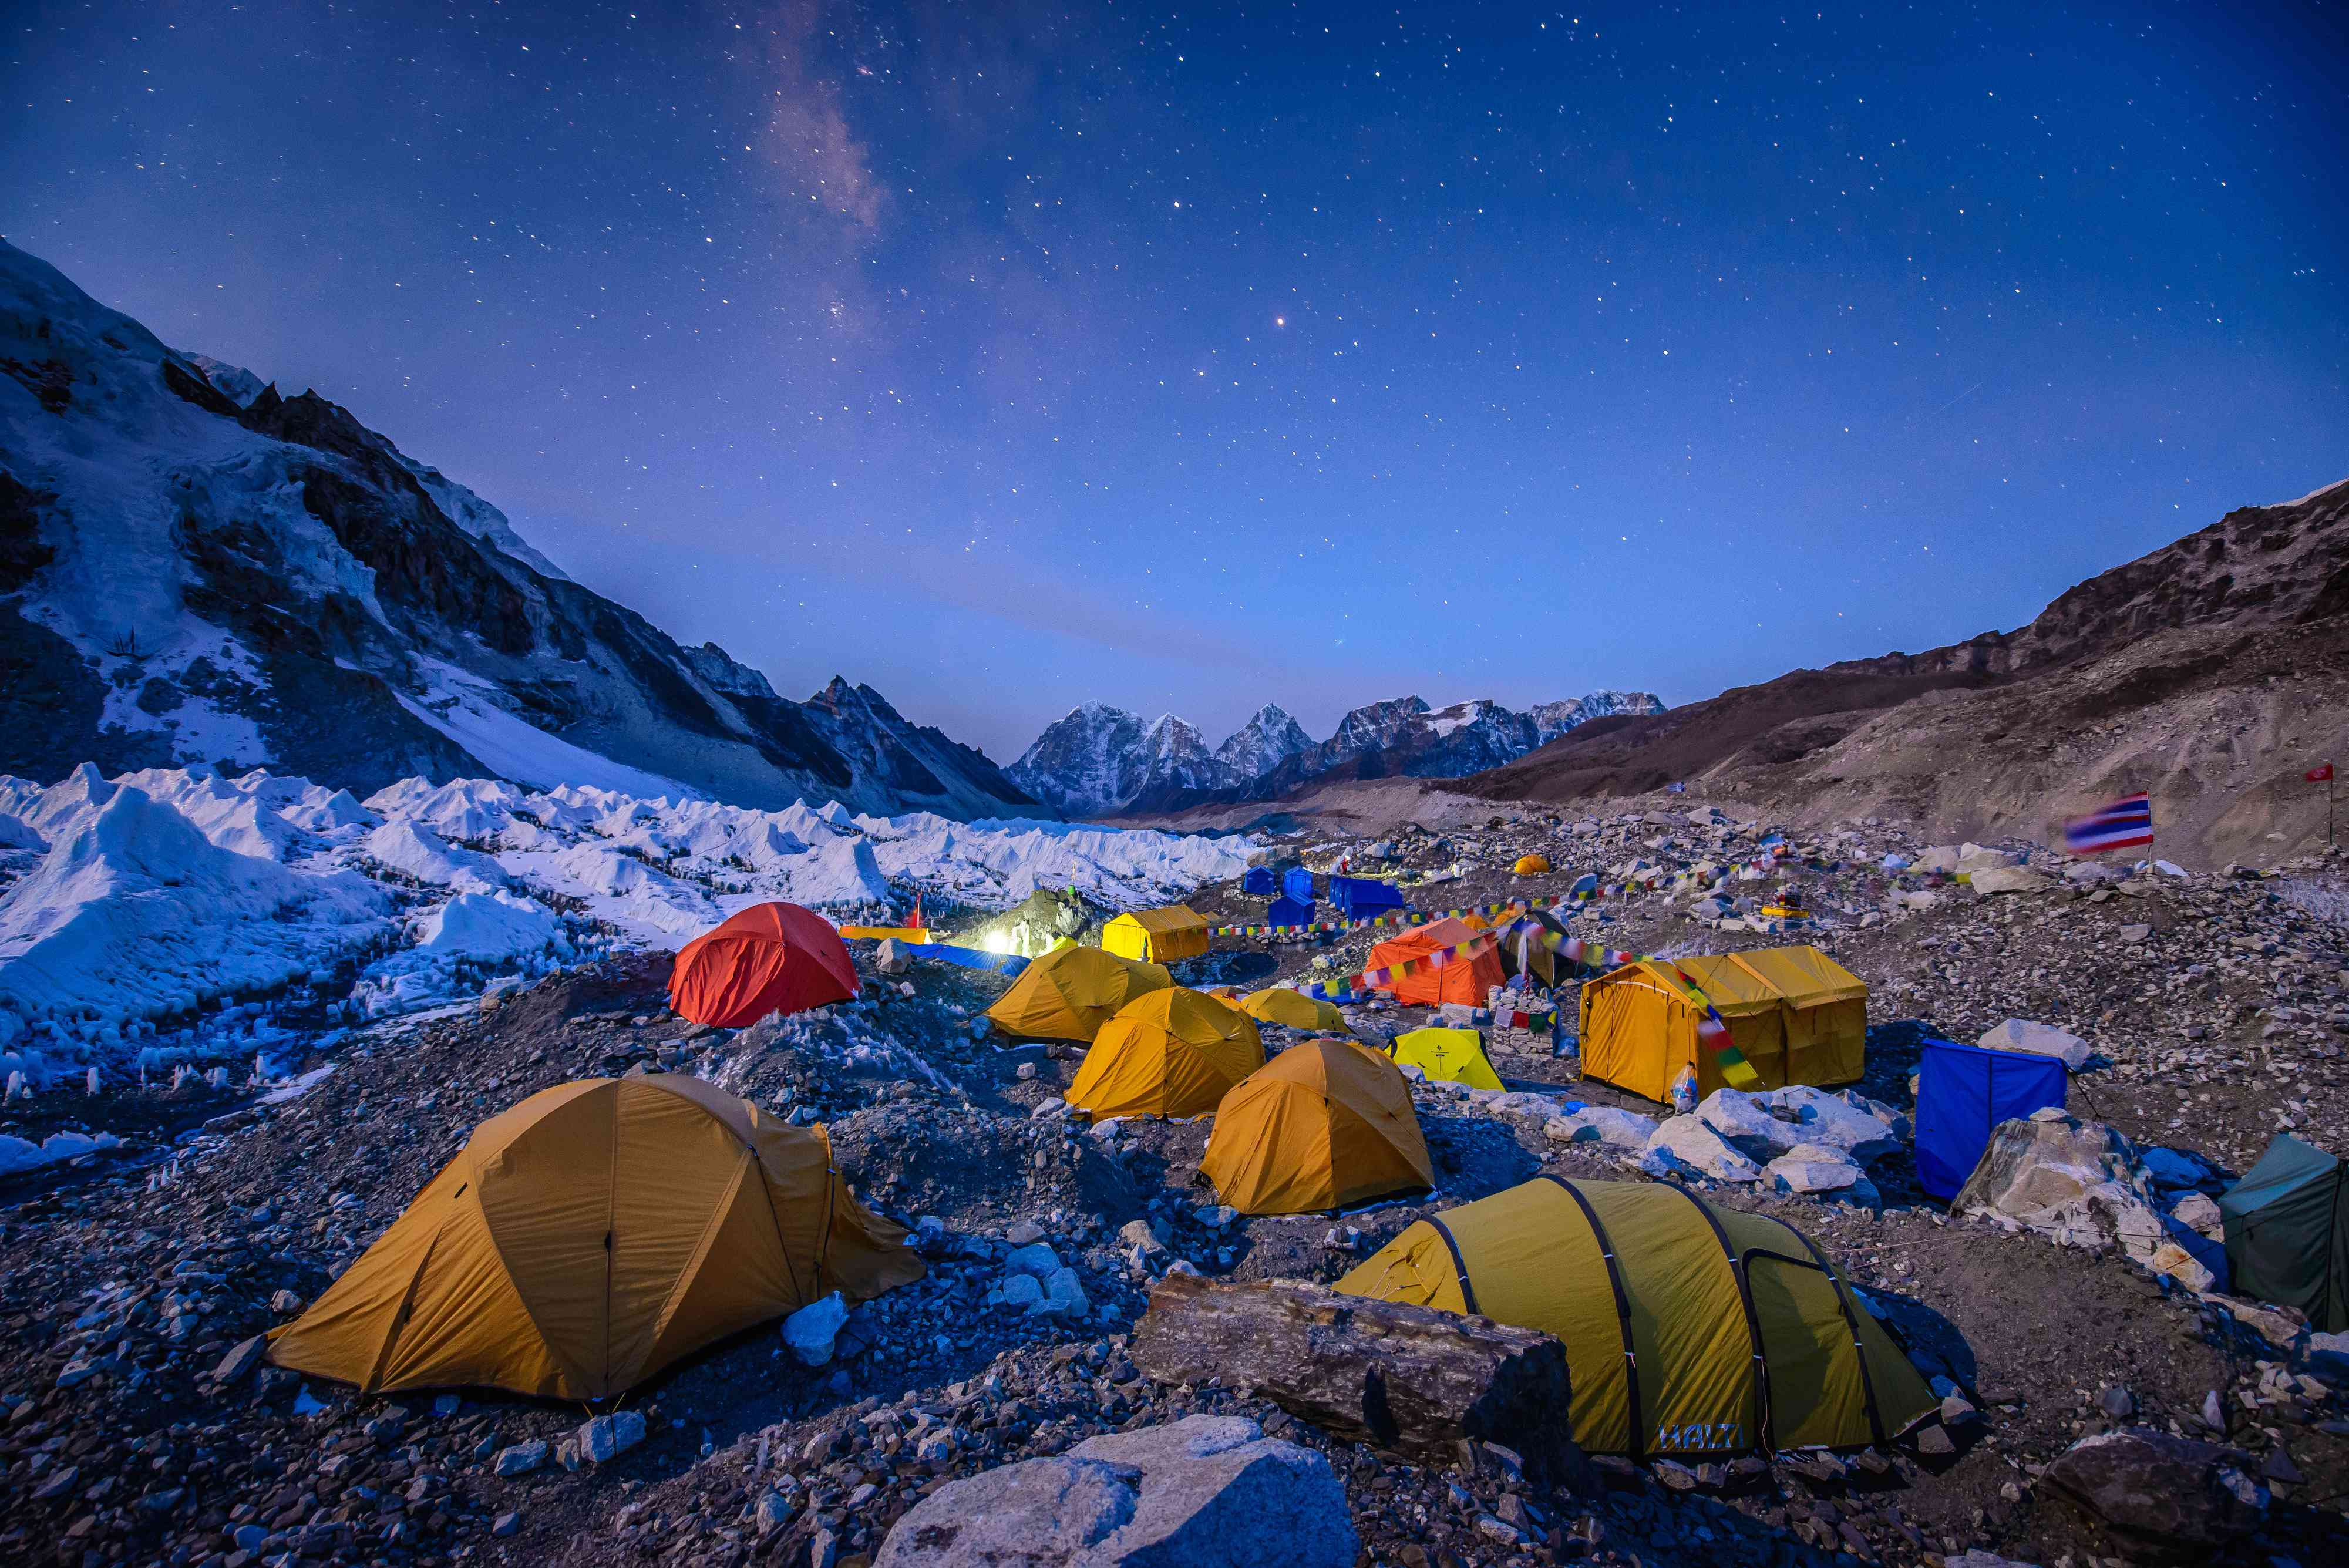 Tents at Everest Base Camp in Nepal